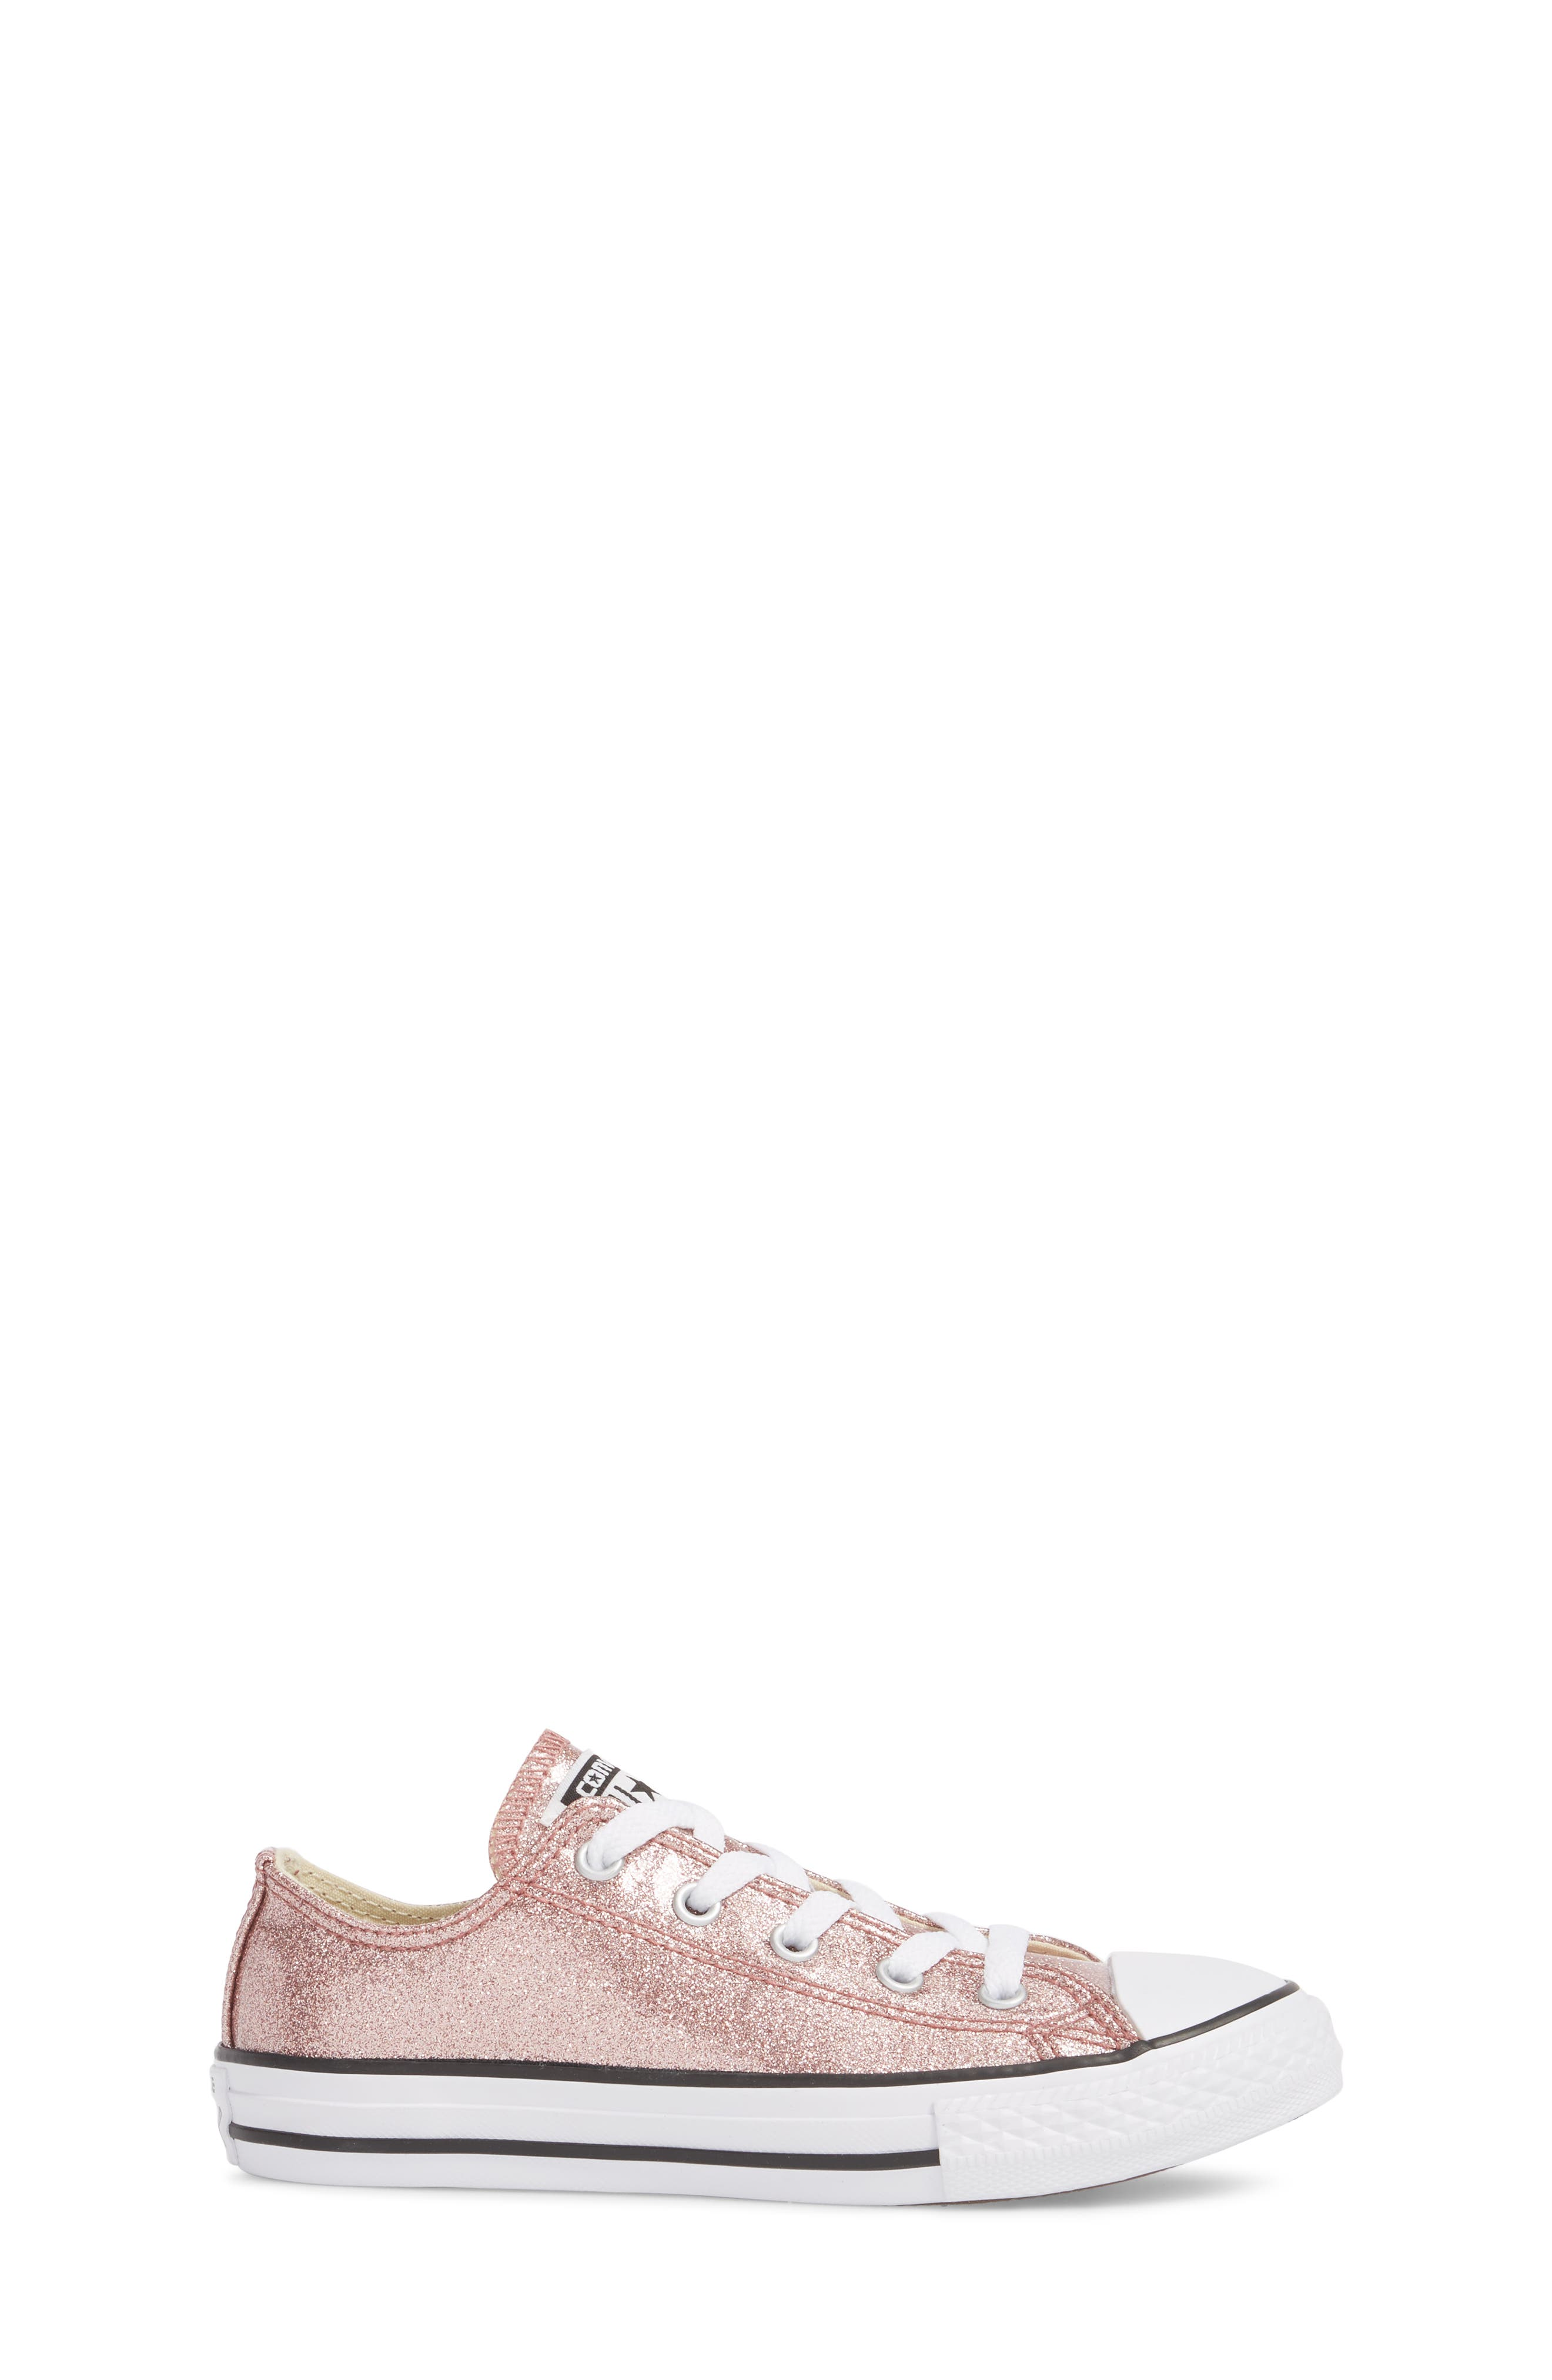 Chuck Taylor<sup>®</sup> All Star<sup>®</sup> Glitter Slip-On,                             Alternate thumbnail 3, color,                             Rose Gold